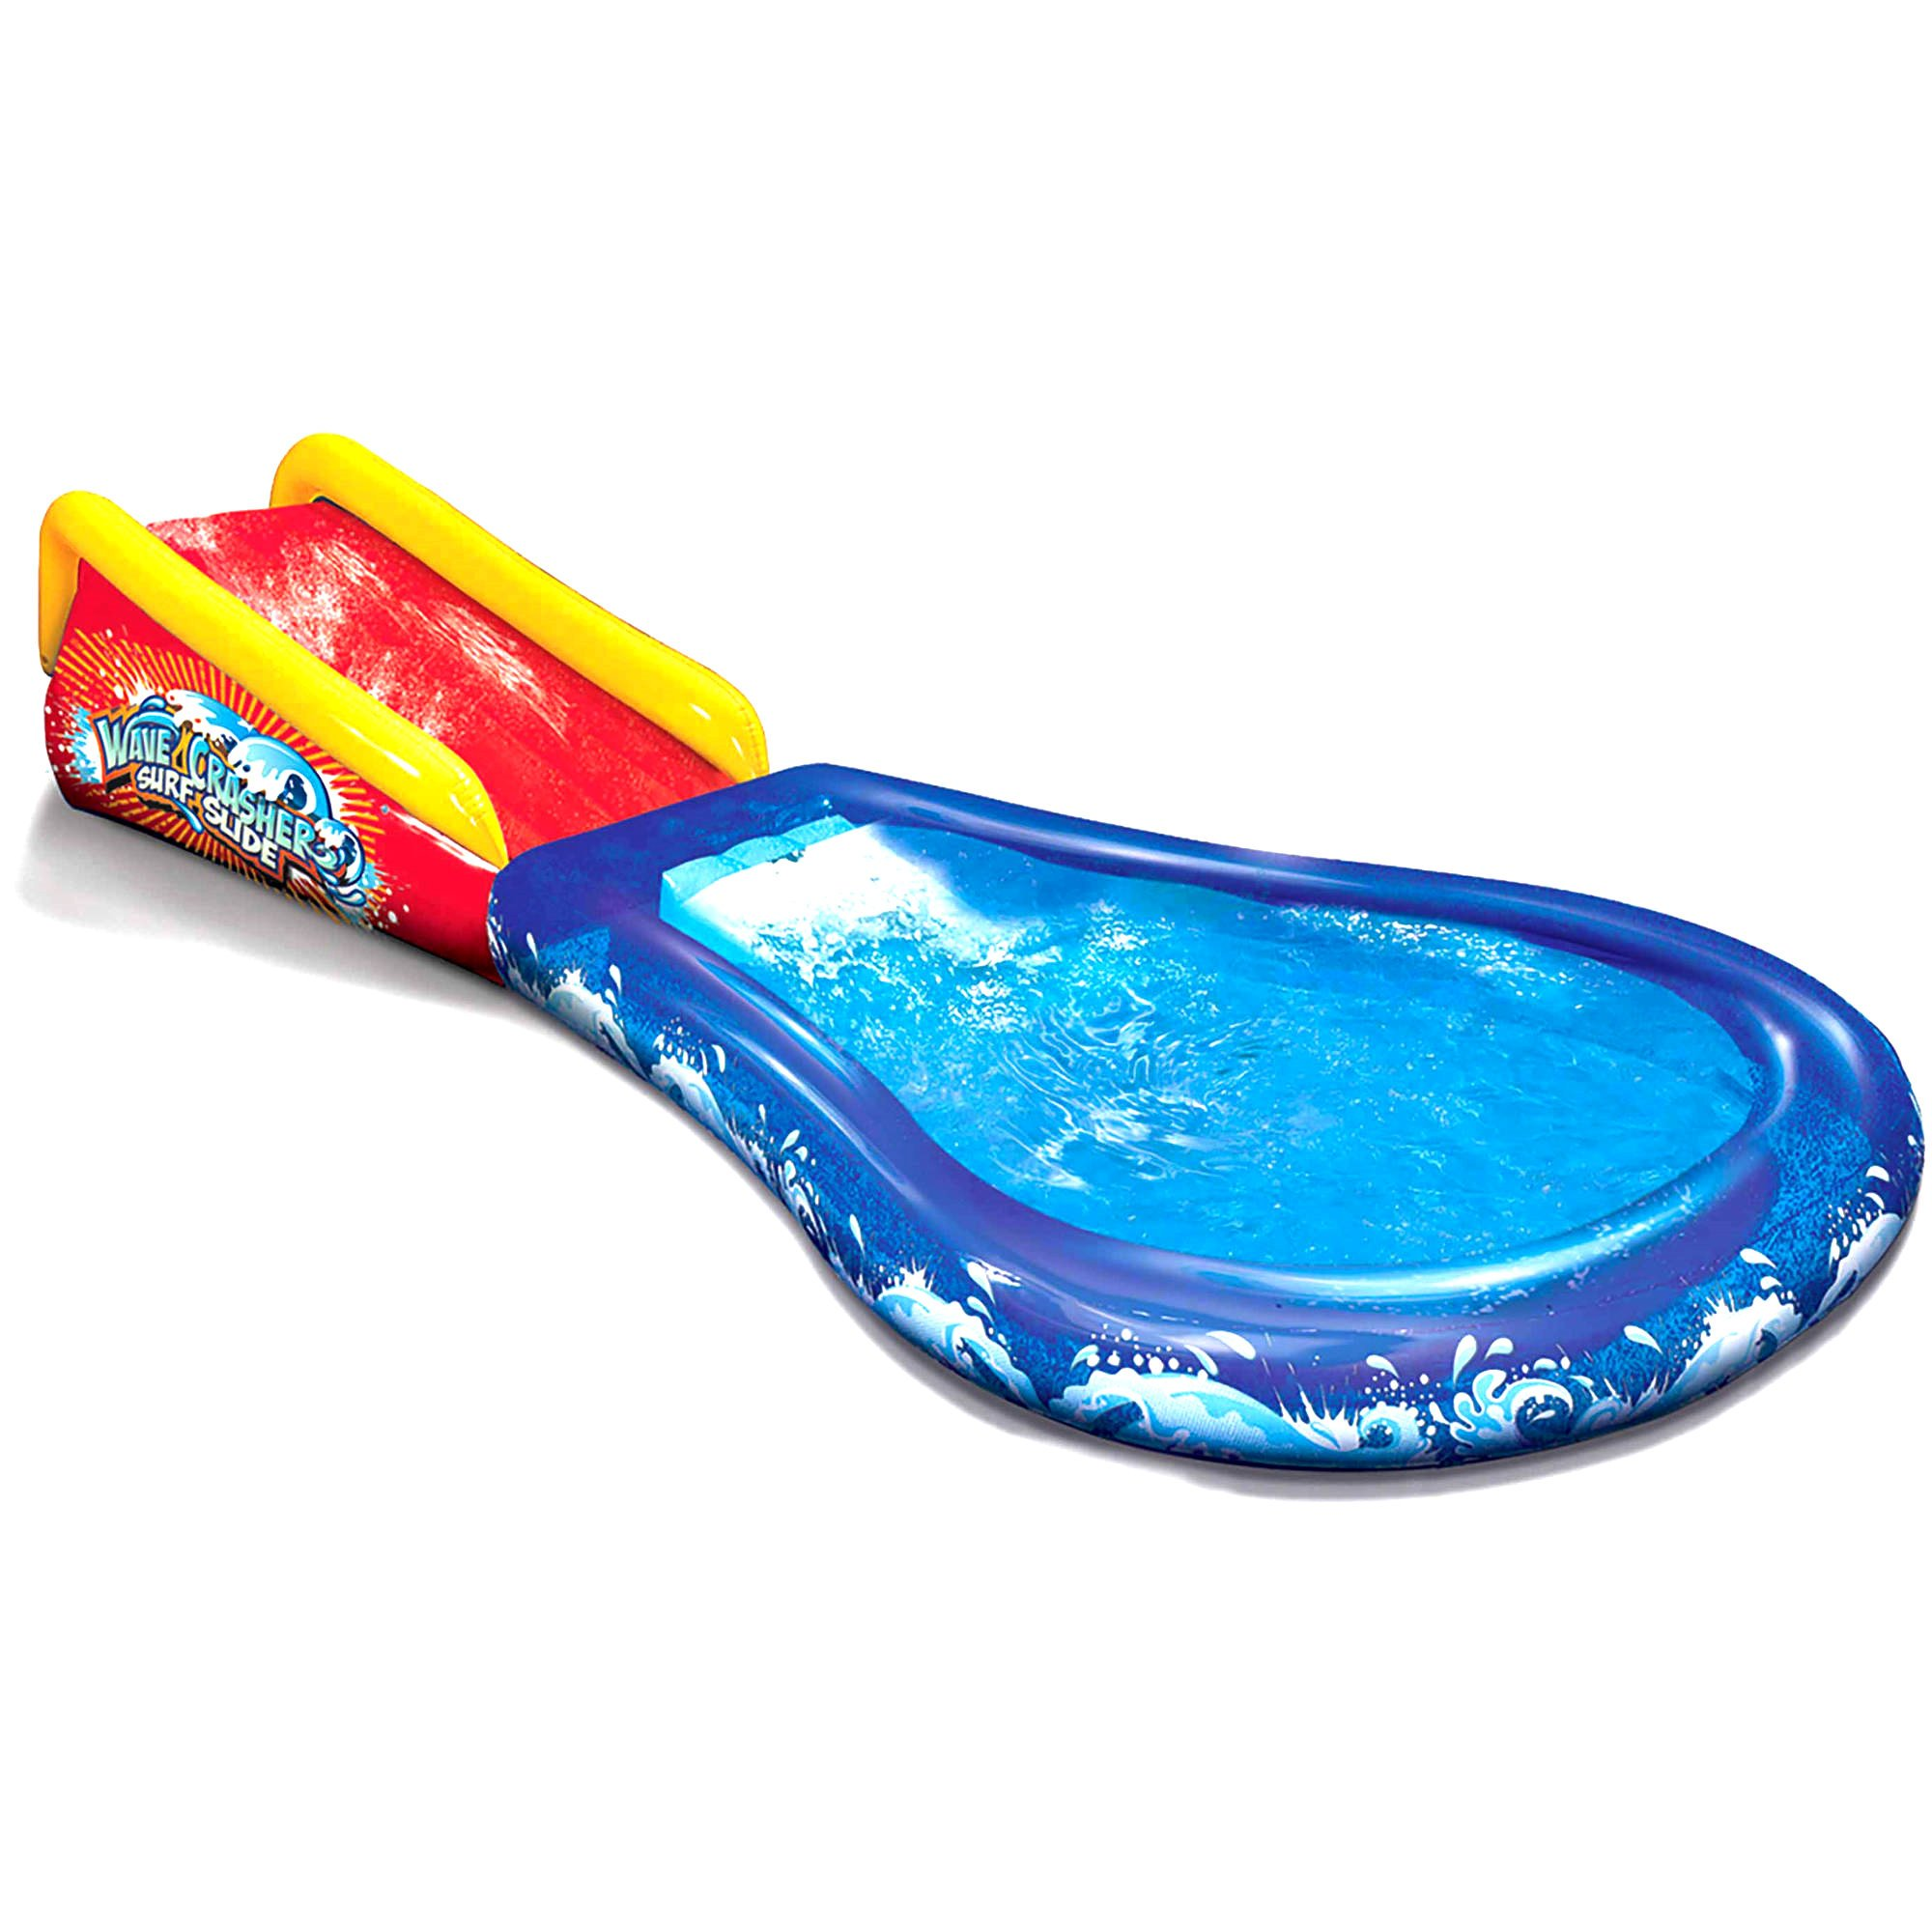 Inflatable Slip N Slide Pool. This Wave Crasher Kiddie Blow Up Above Ground Long Water Slide Is Great For Toddlers, Children, Kids. Plus Boogie, Aqua Splash To Have Outdoor Water Fun W/all Family.